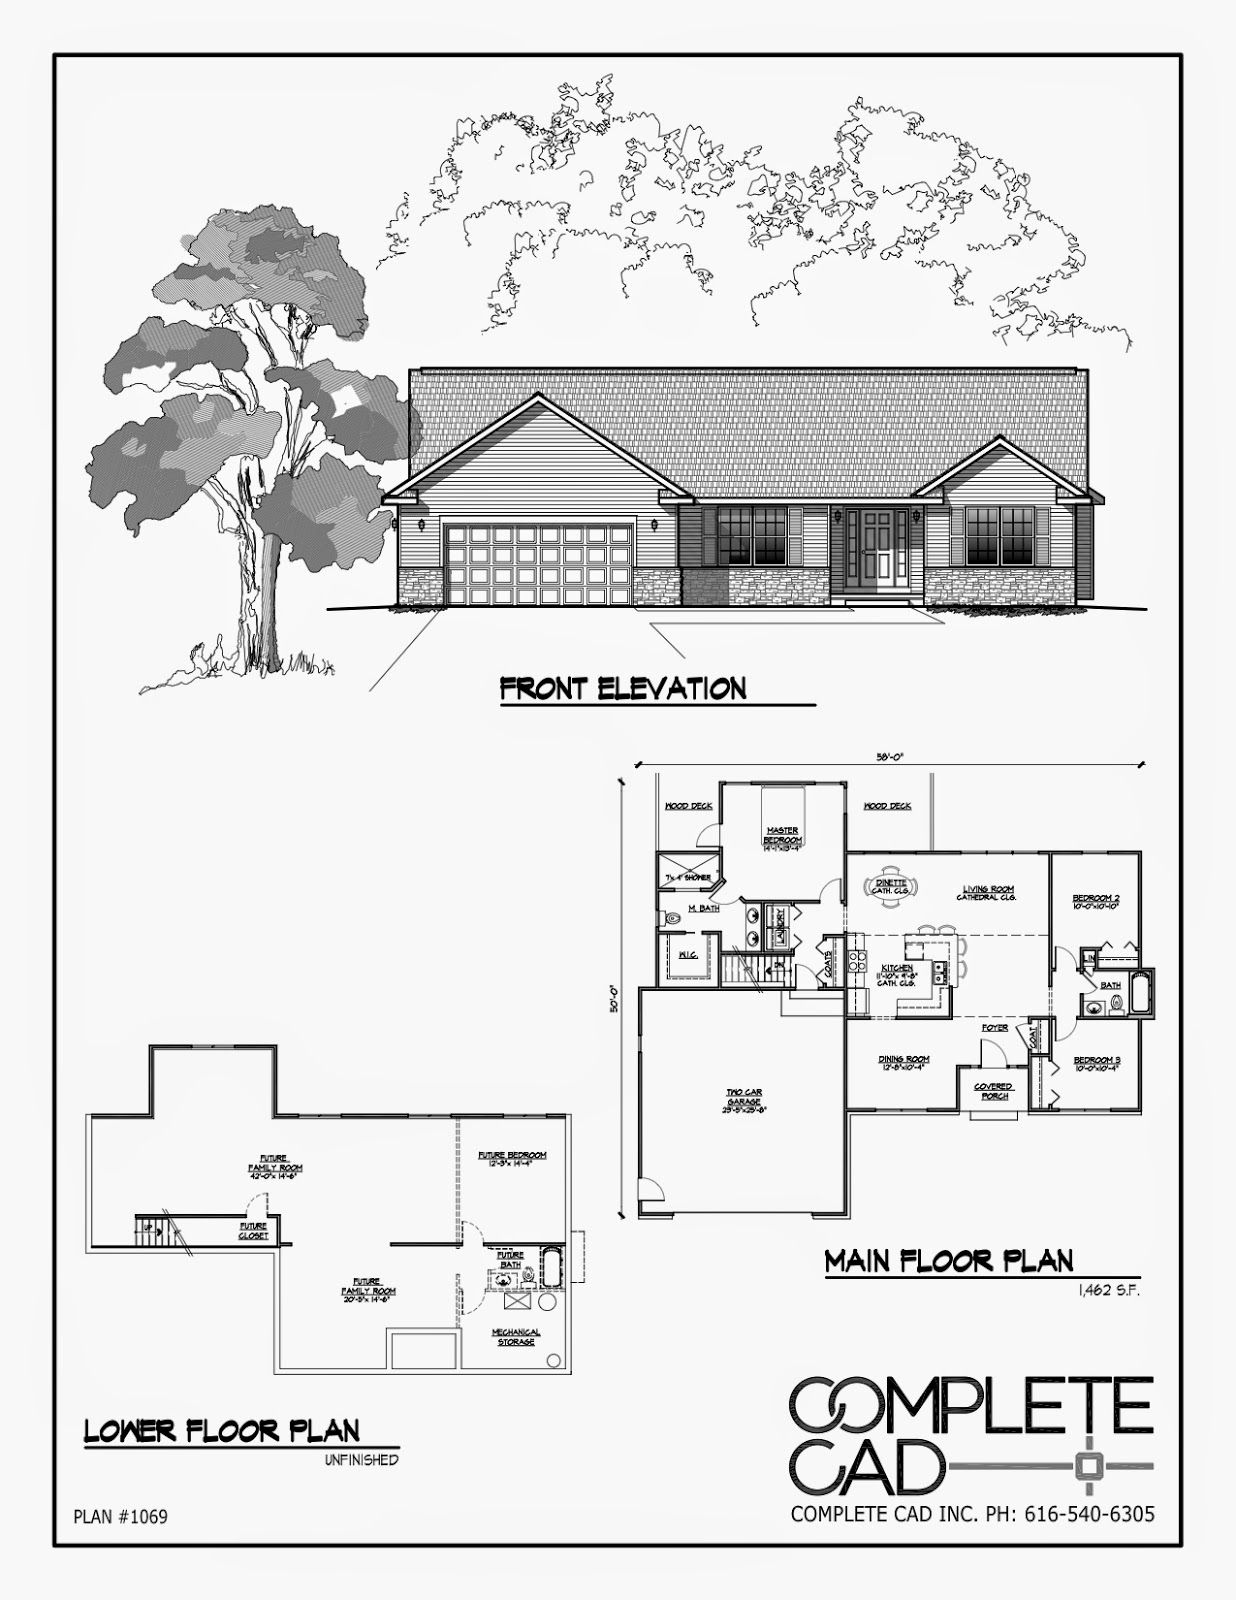 3 Bedroom Wheelchair Accessible House Plans Universal Design For Accessible Homes Accessible House Plans Accessible House Floor Plans